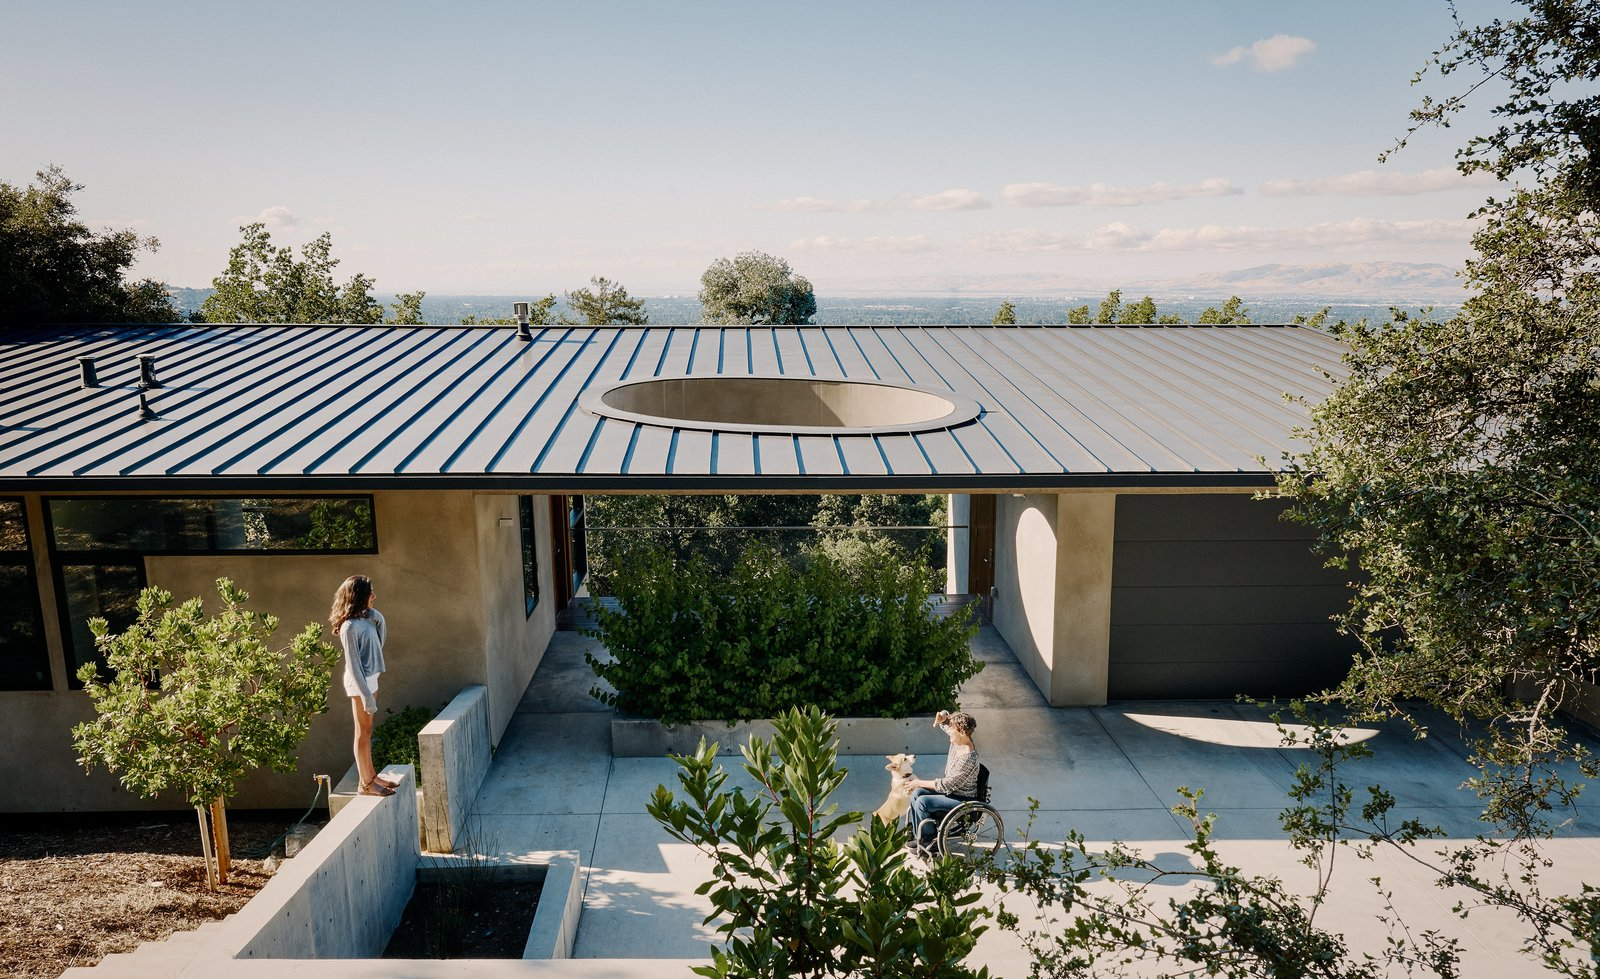 Exterior, House Building Type, Stucco Siding Material, and Metal Roof Material With both an aging relative and a wheelchair user in mind, architect Neal Schwartz creates a family guesthouse designed to be accessible to all. Resident Elizabeth Twaddell enjoys the weather with her daughter Uma outside the guesthouse Schwartz designed for her mother-in-law, Surendra, who frequently visits for extended stays. A concrete driveway forks off from the main house to lead to a covered breezeway, sited between the new 775-square-foot structure and a two-car garage.  Best Photos from A Family Guesthouse Made for Accessibility, Aging in Place—and That View